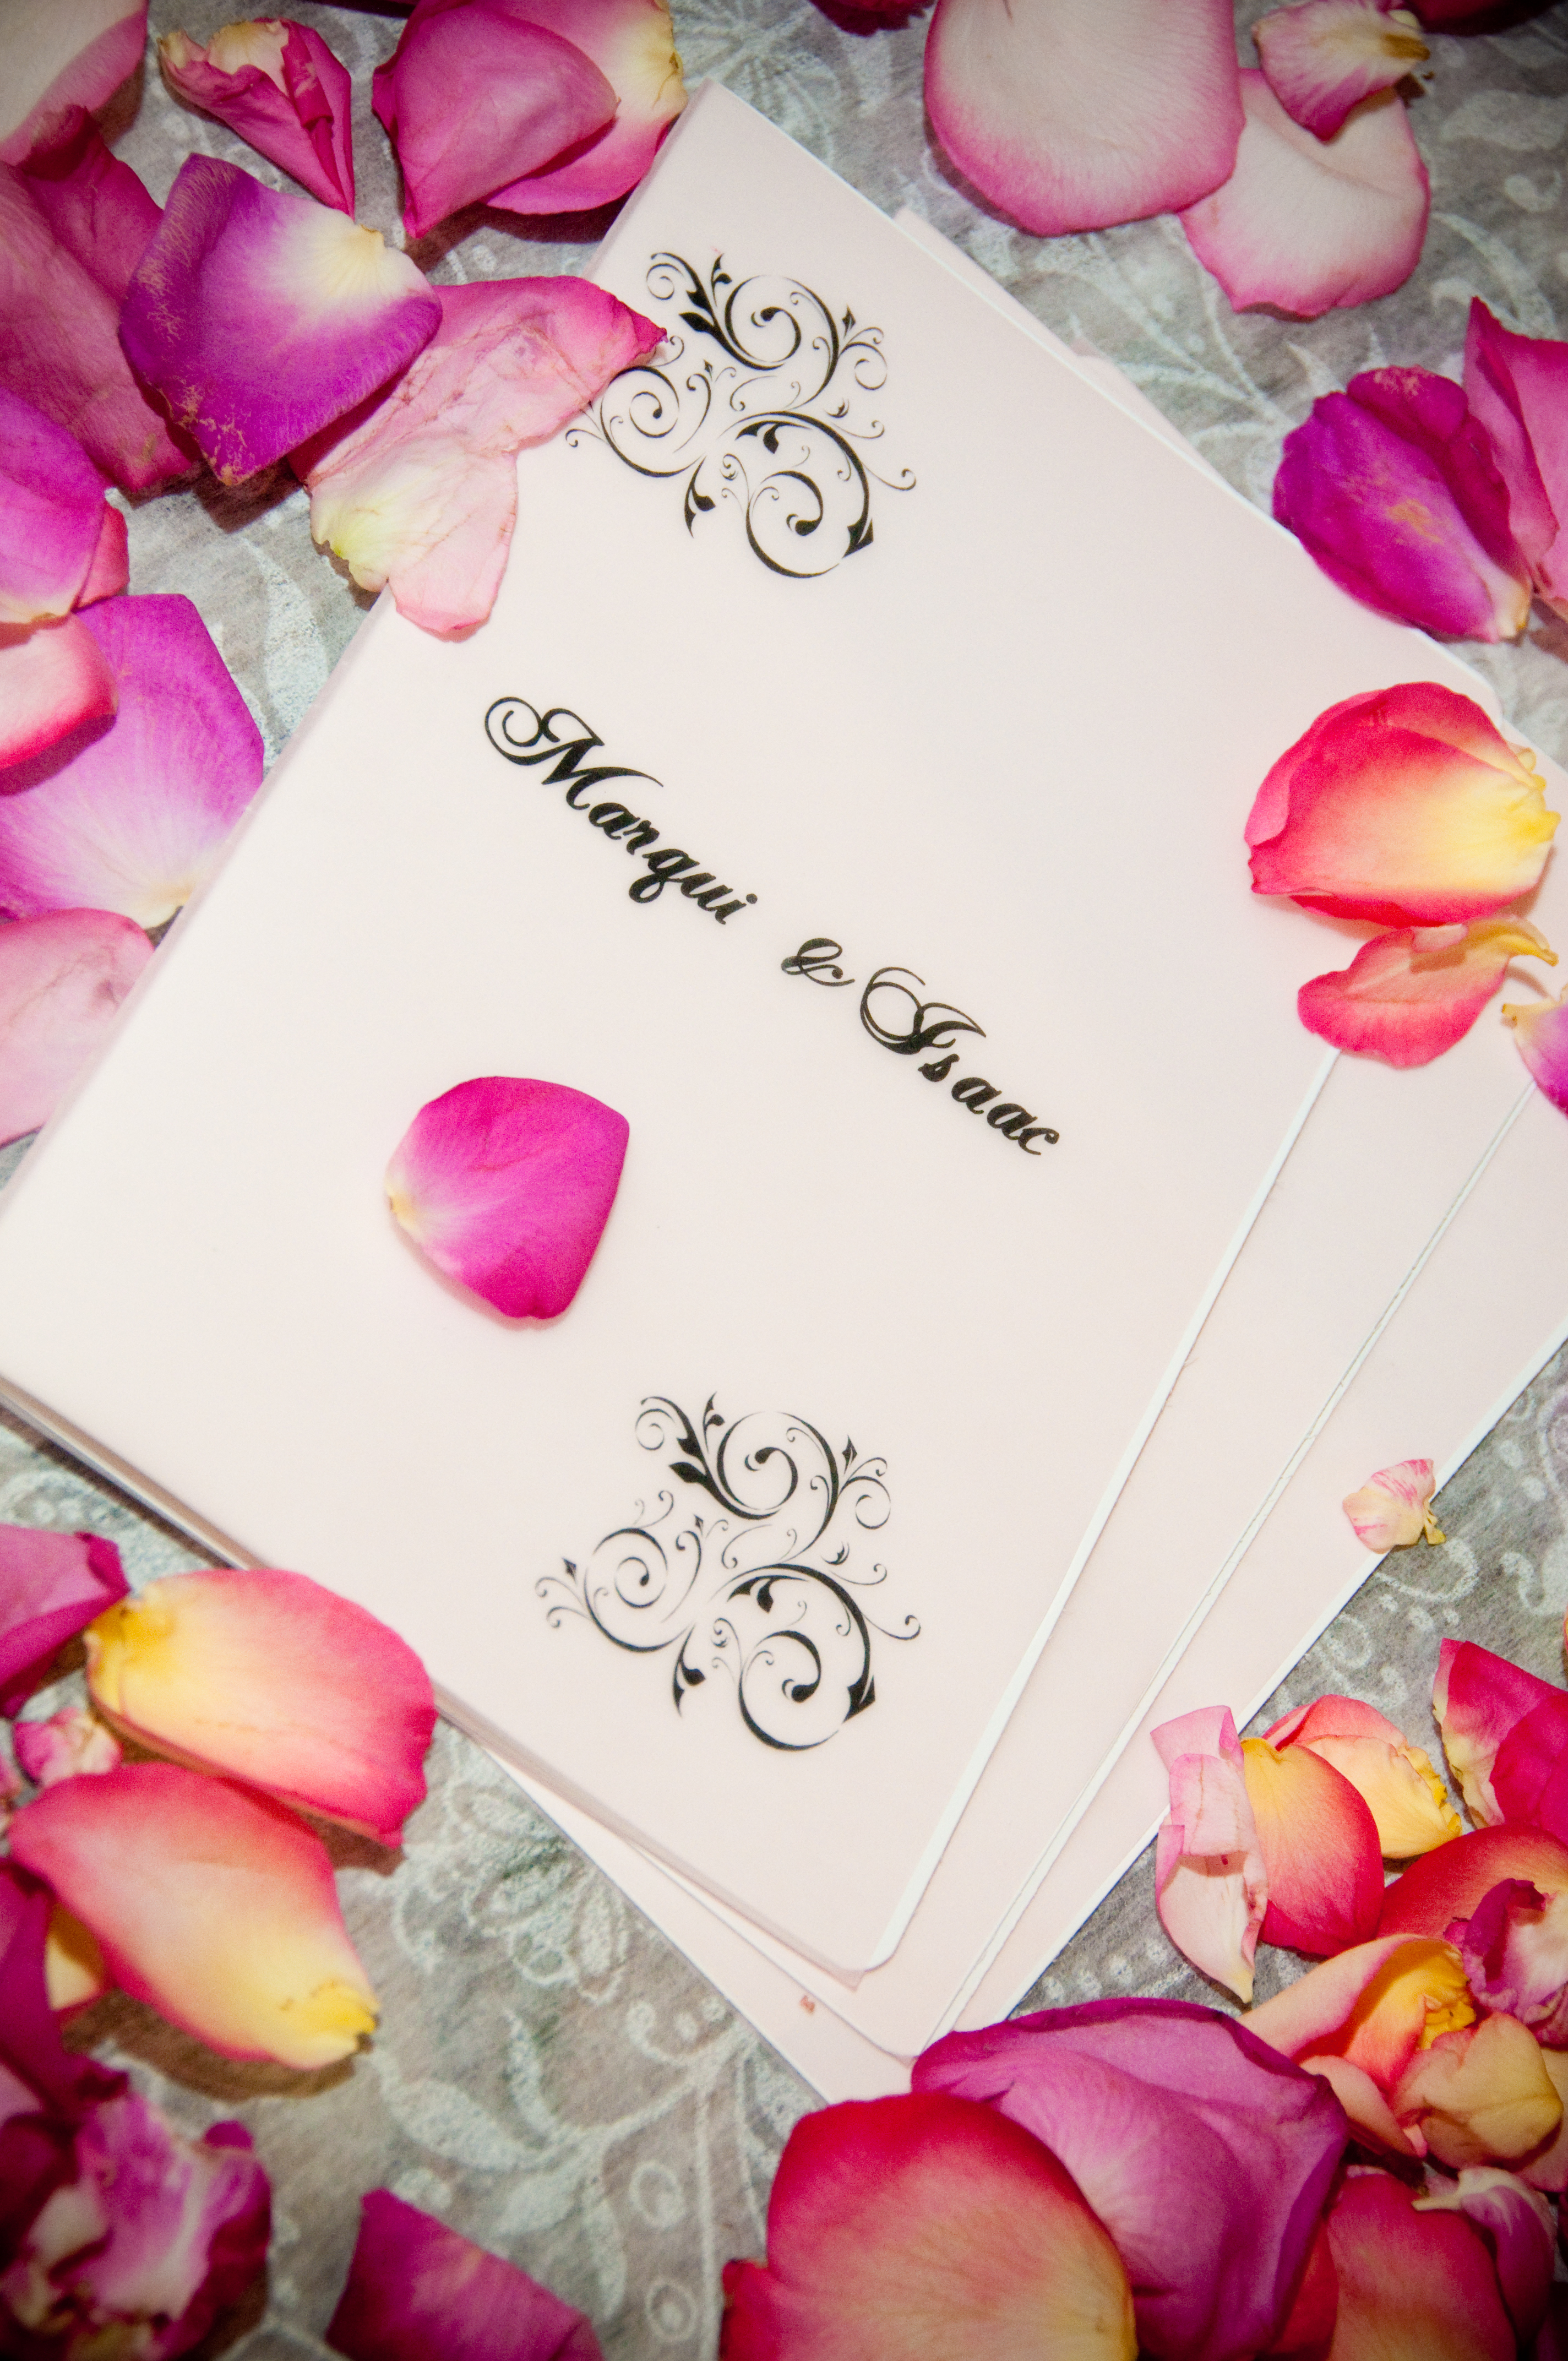 Ceremony, Flowers & Decor, Stationery, pink, black, silver, Ceremony Programs, Programs, Wedding, Rose, Petals, Etc, Soiree